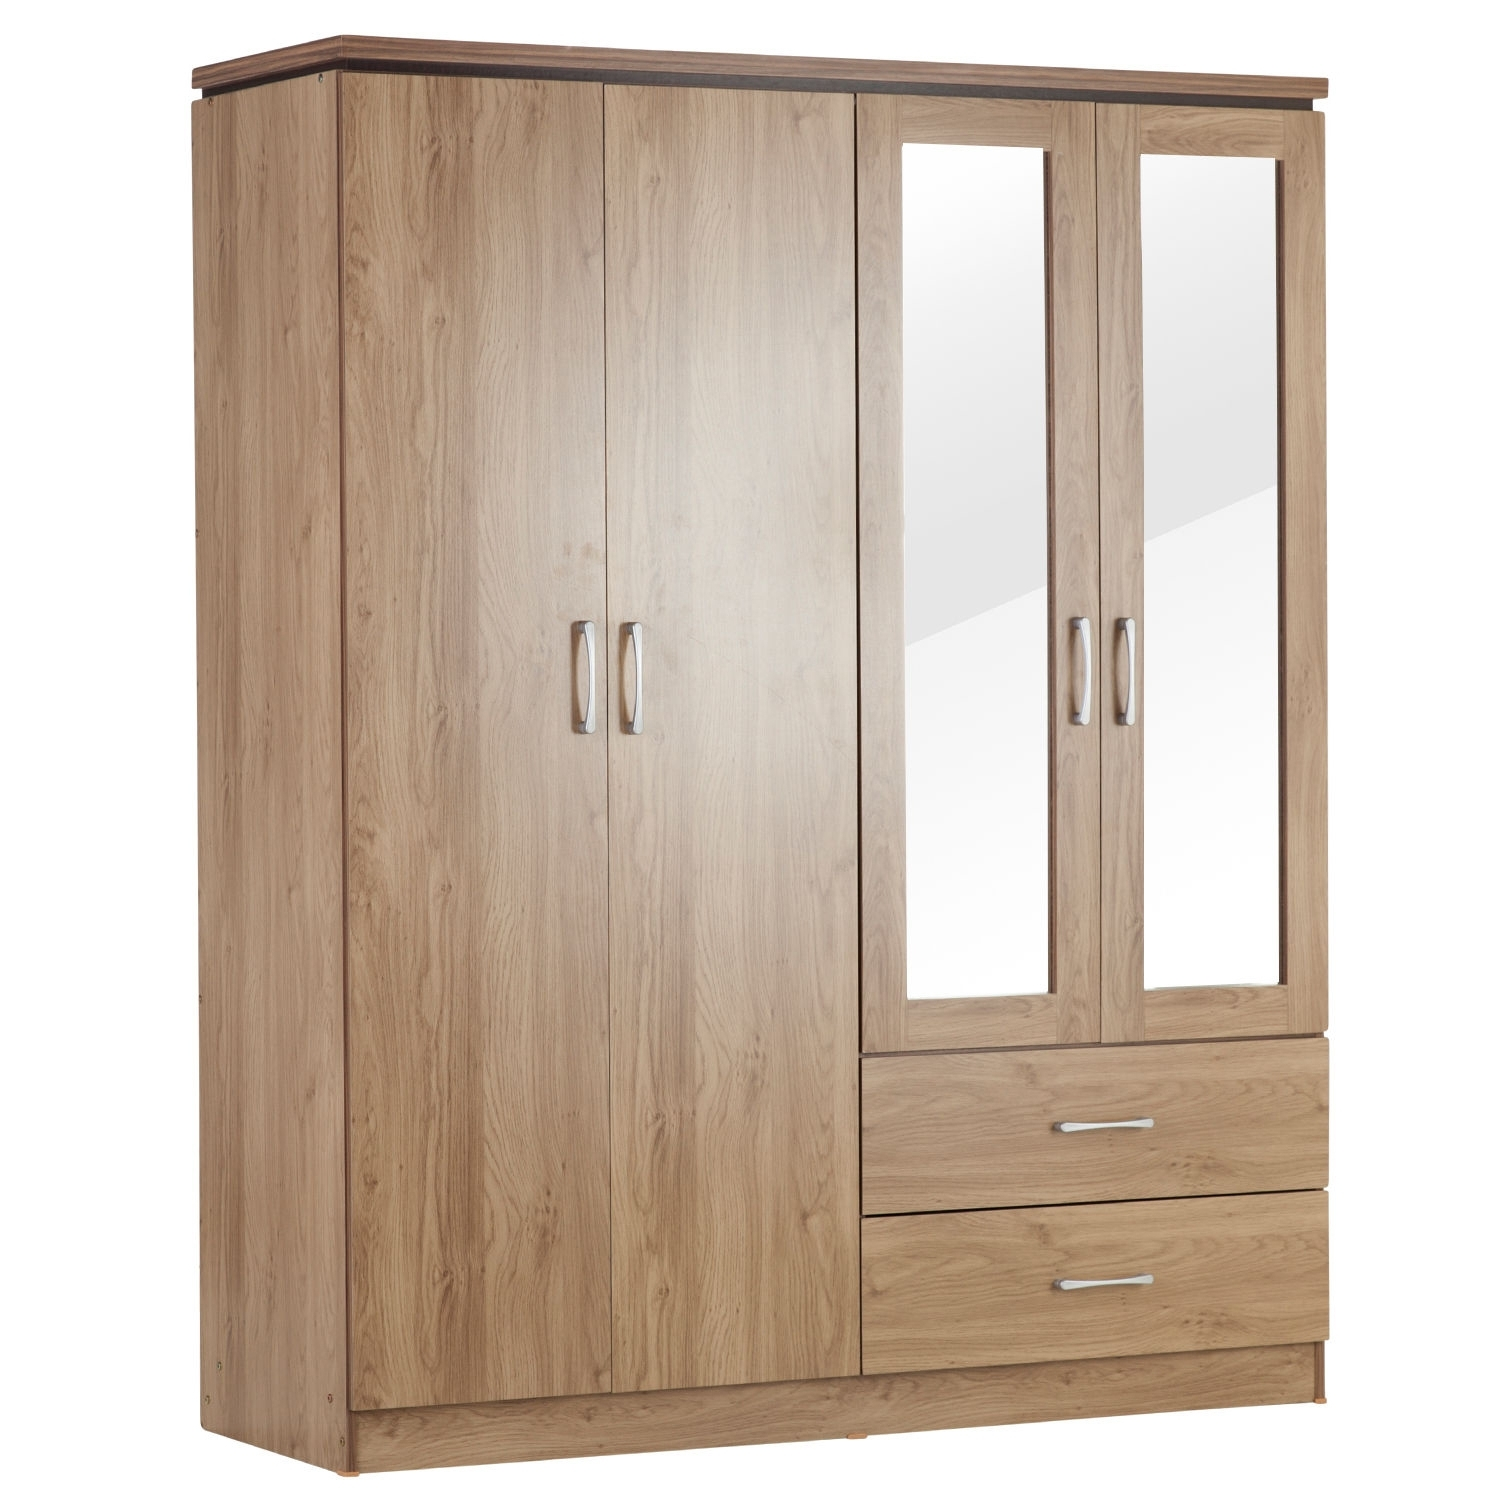 Wardrobes 4 Doors Within Most Popular Charles 4 Door Wardrobe – Next Day Delivery Charles 4 Door (View 12 of 15)